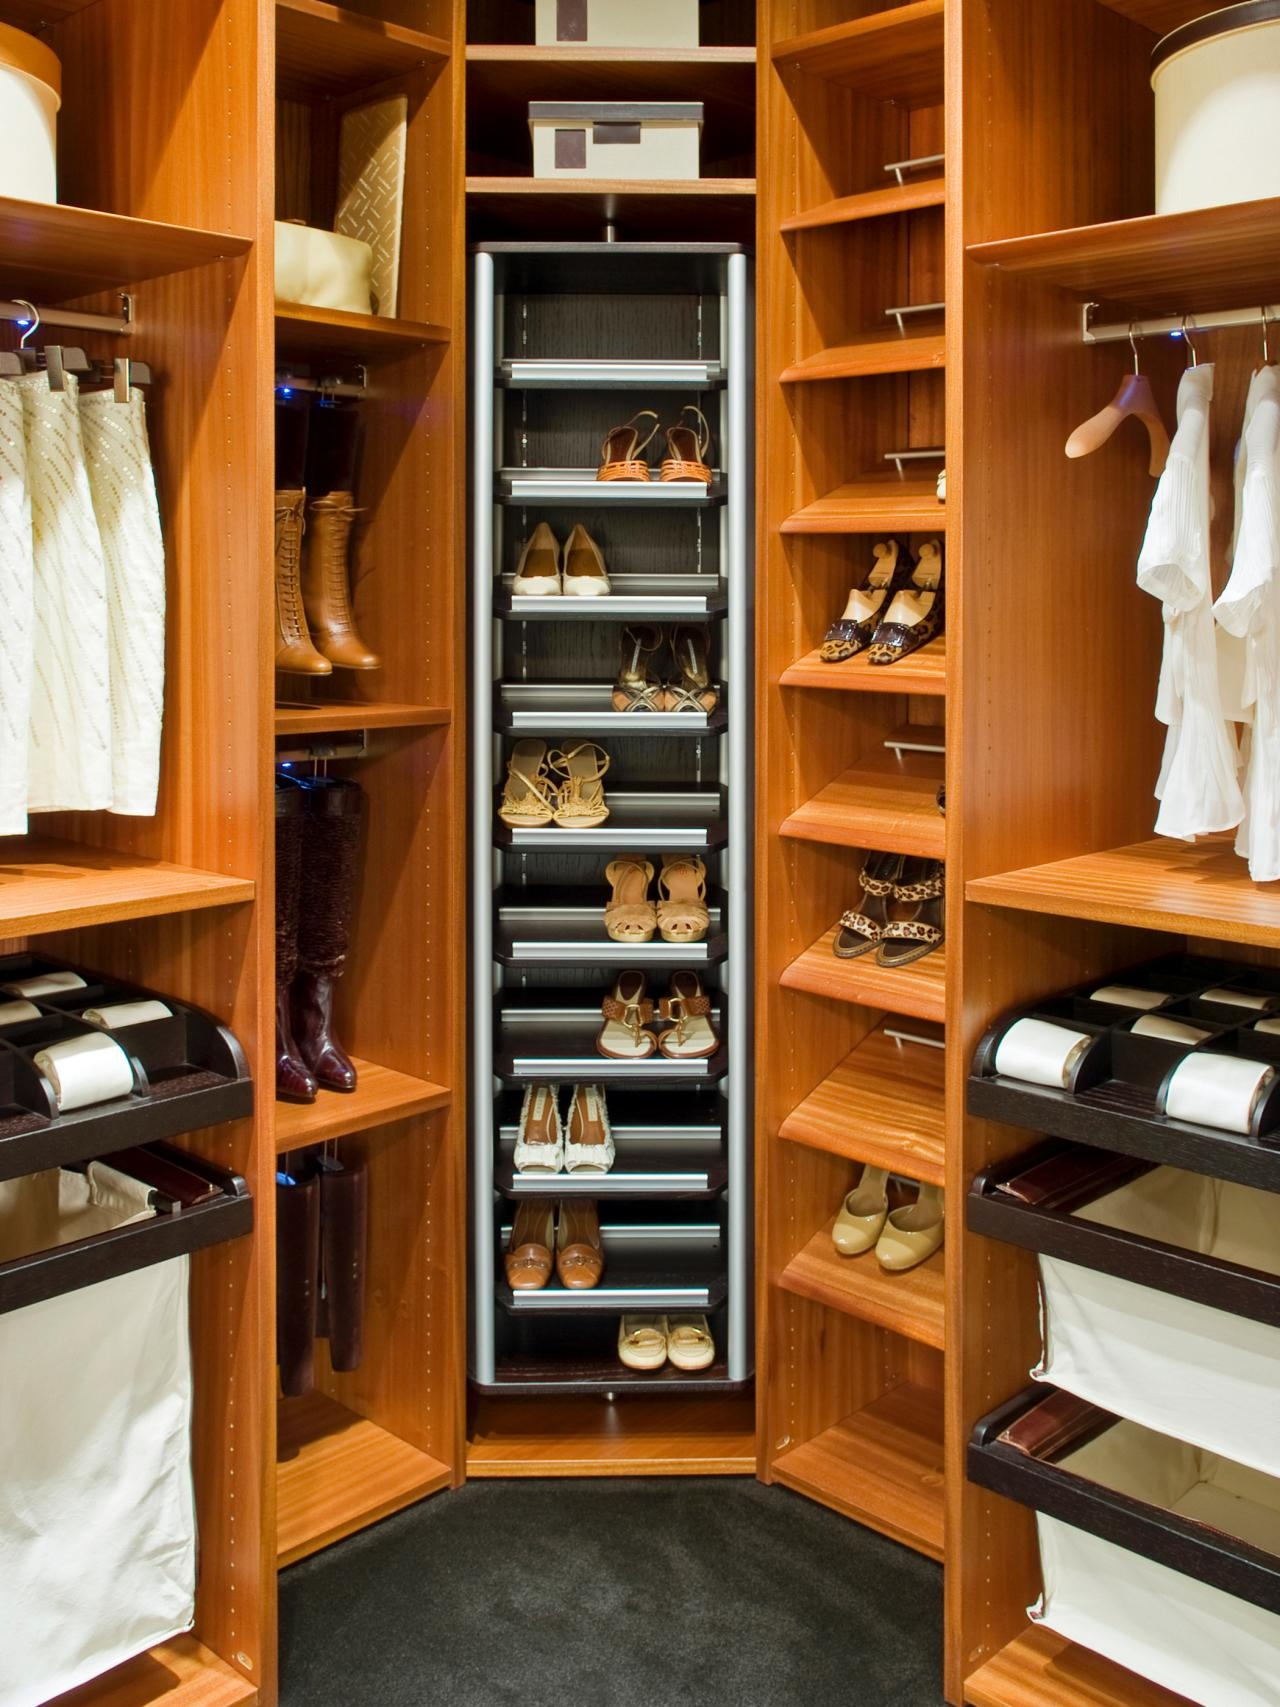 Shoe Storage And Organization Ideas Pictures Tips Options Hgtv Pertaining To Wardrobe Shoe Storages (Image 21 of 25)